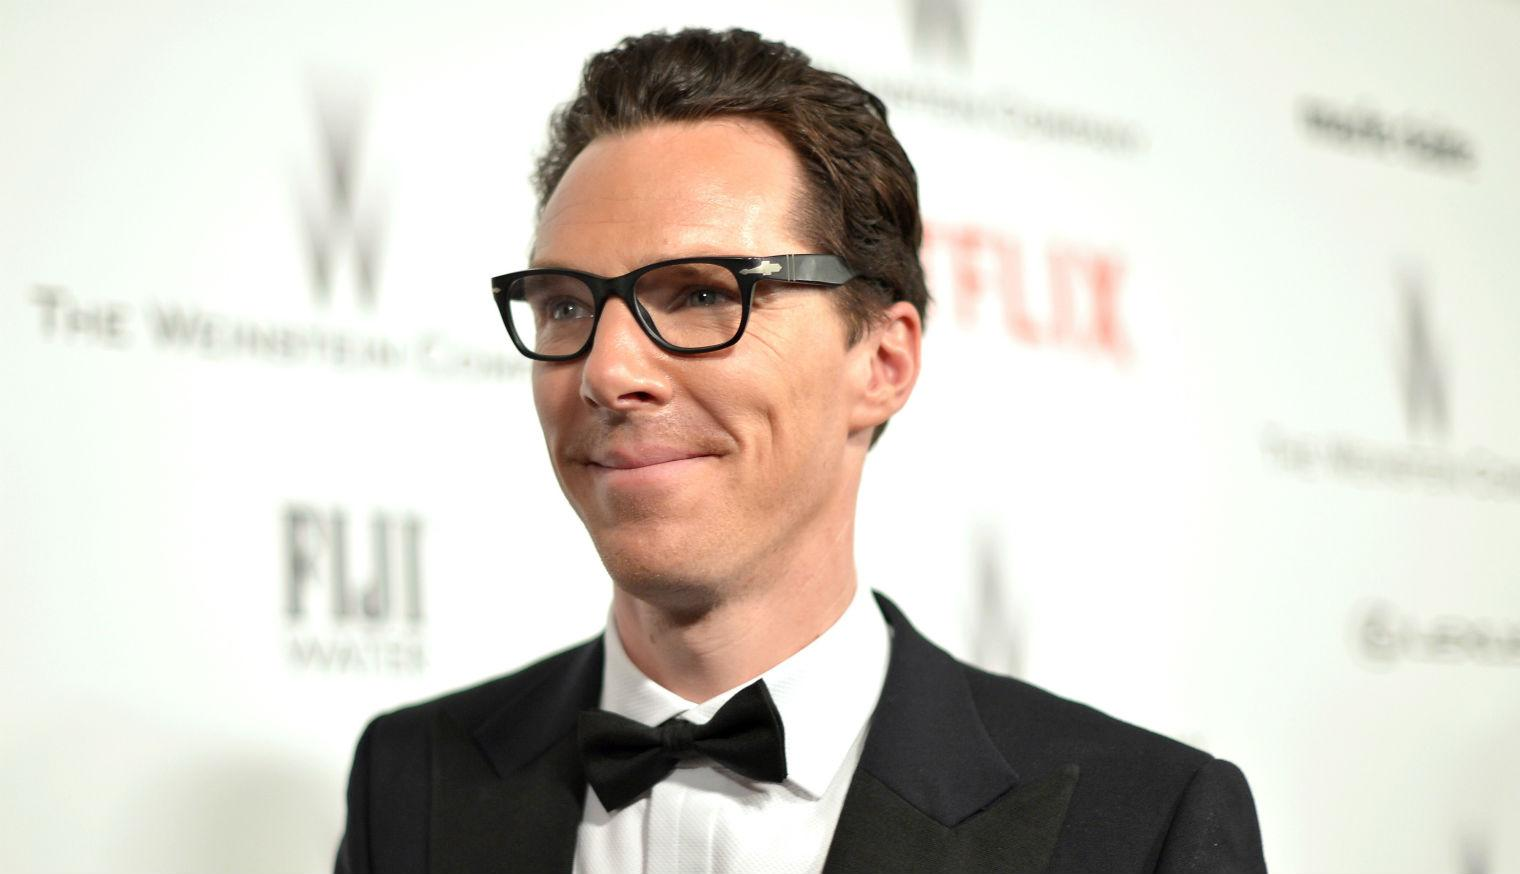 Everyone should read Benedict Cumberbatch's moving letter to Father Christmas